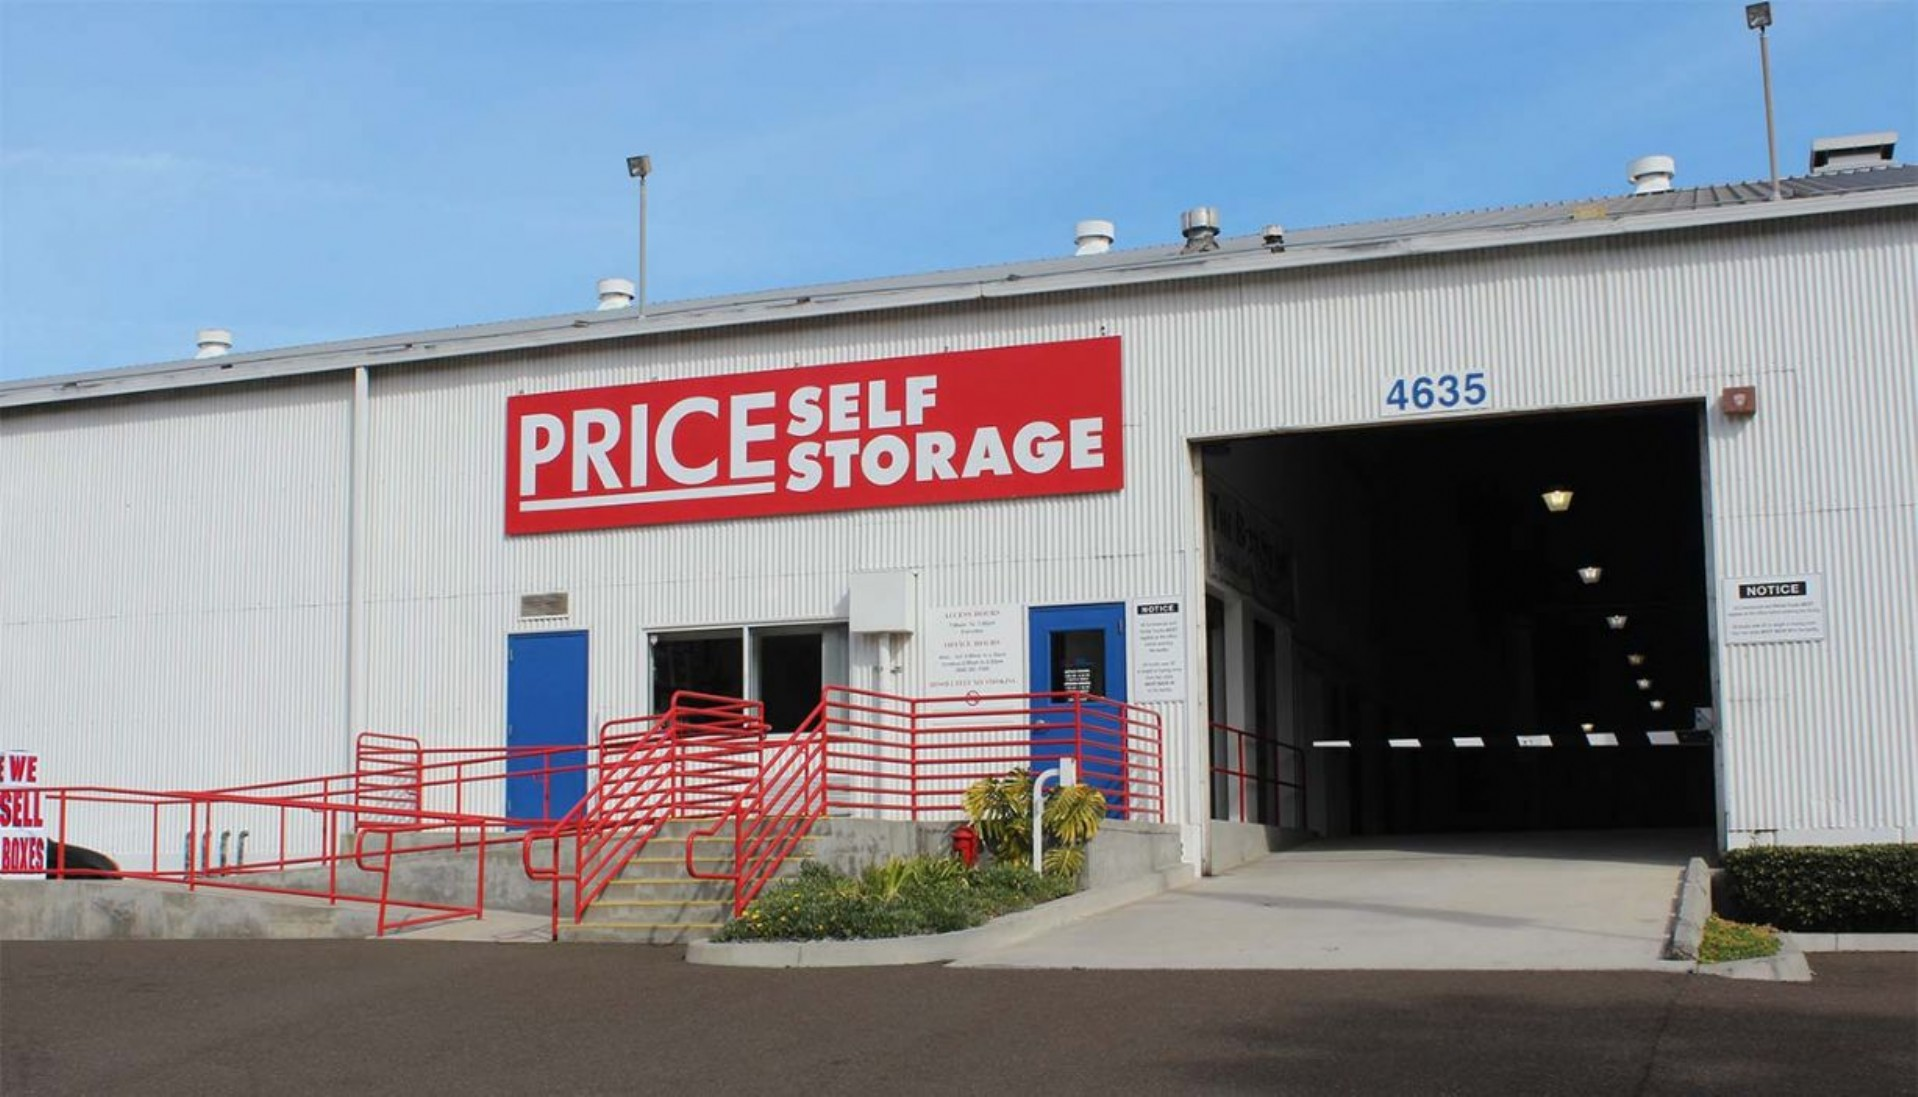 Price Self Storage Morena Blvd entrance to drive in storage facility